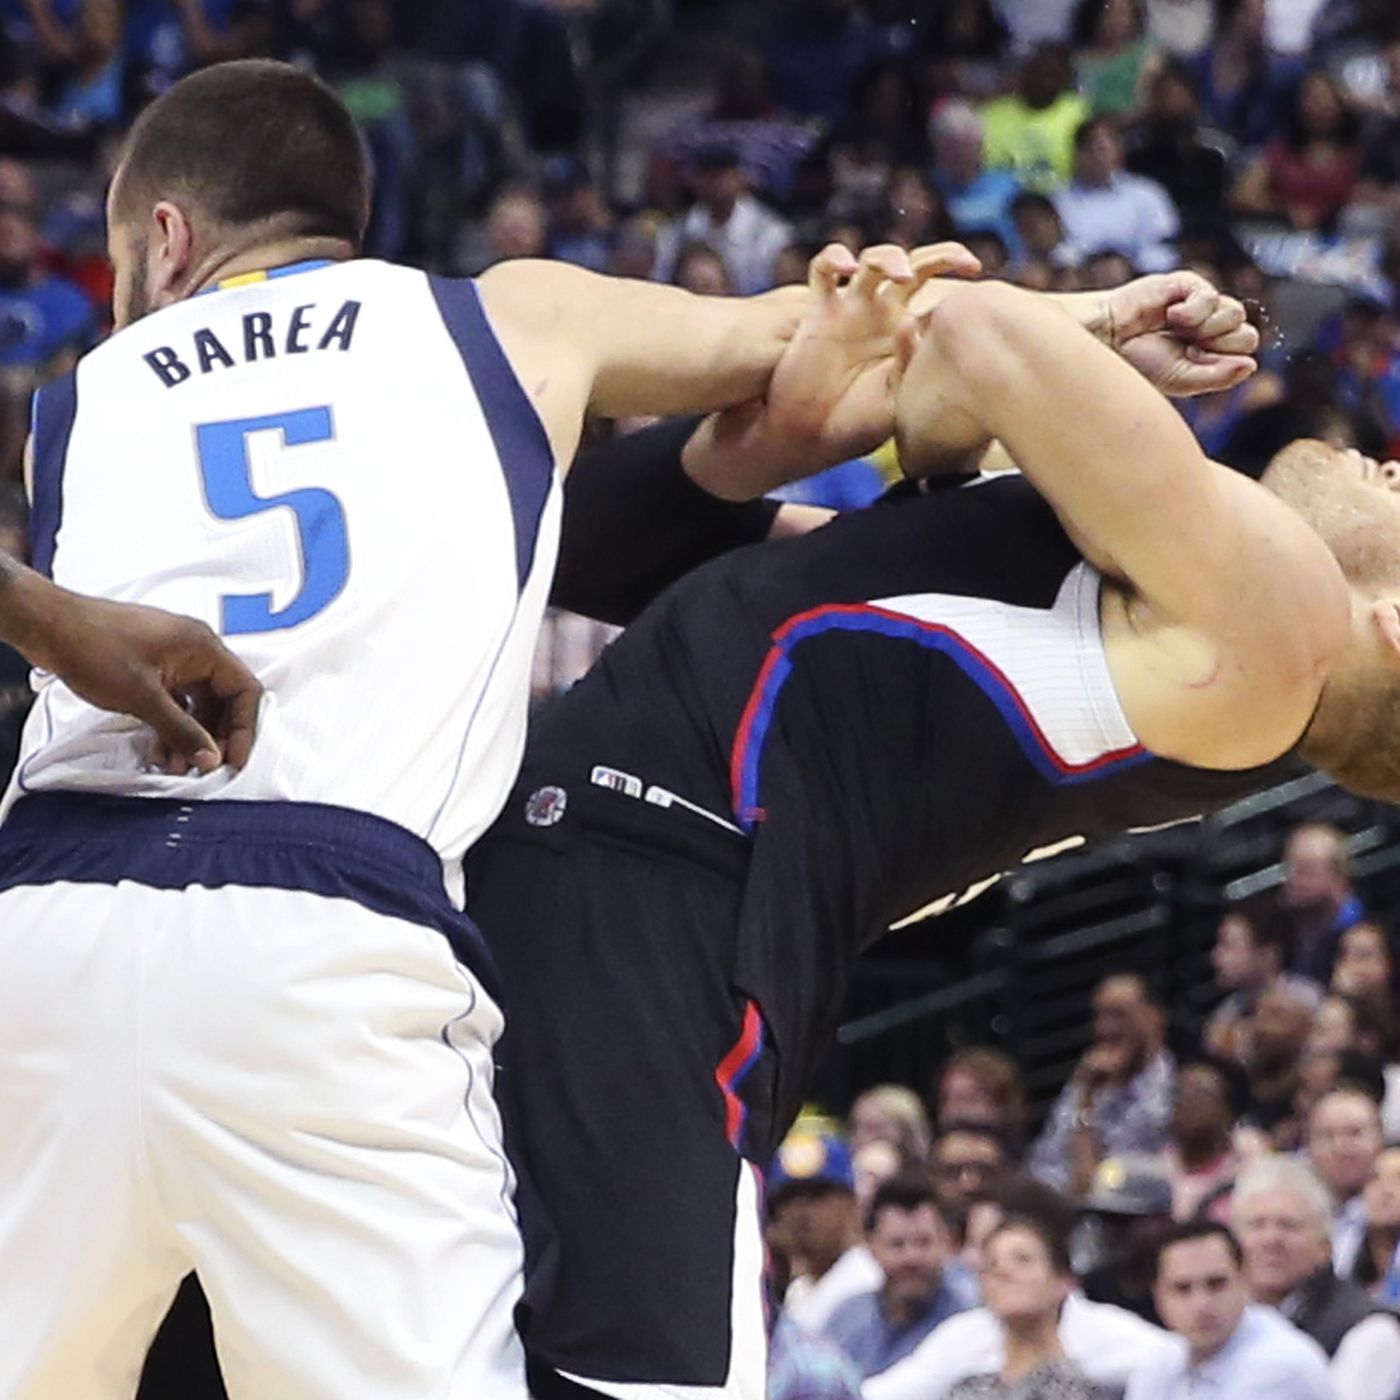 J J  Barea called out Blake Griffin for flopping after he